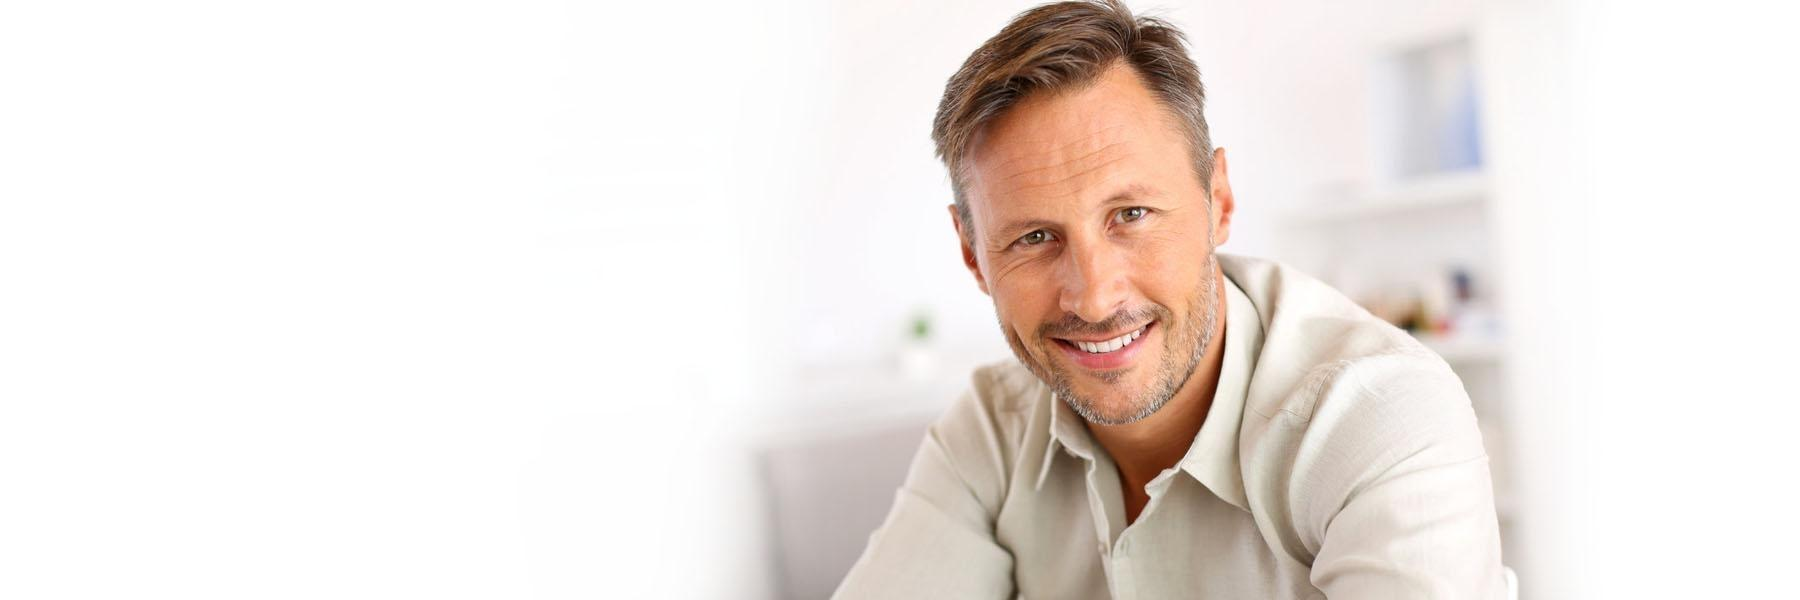 man smiling | dentist in broomfield co